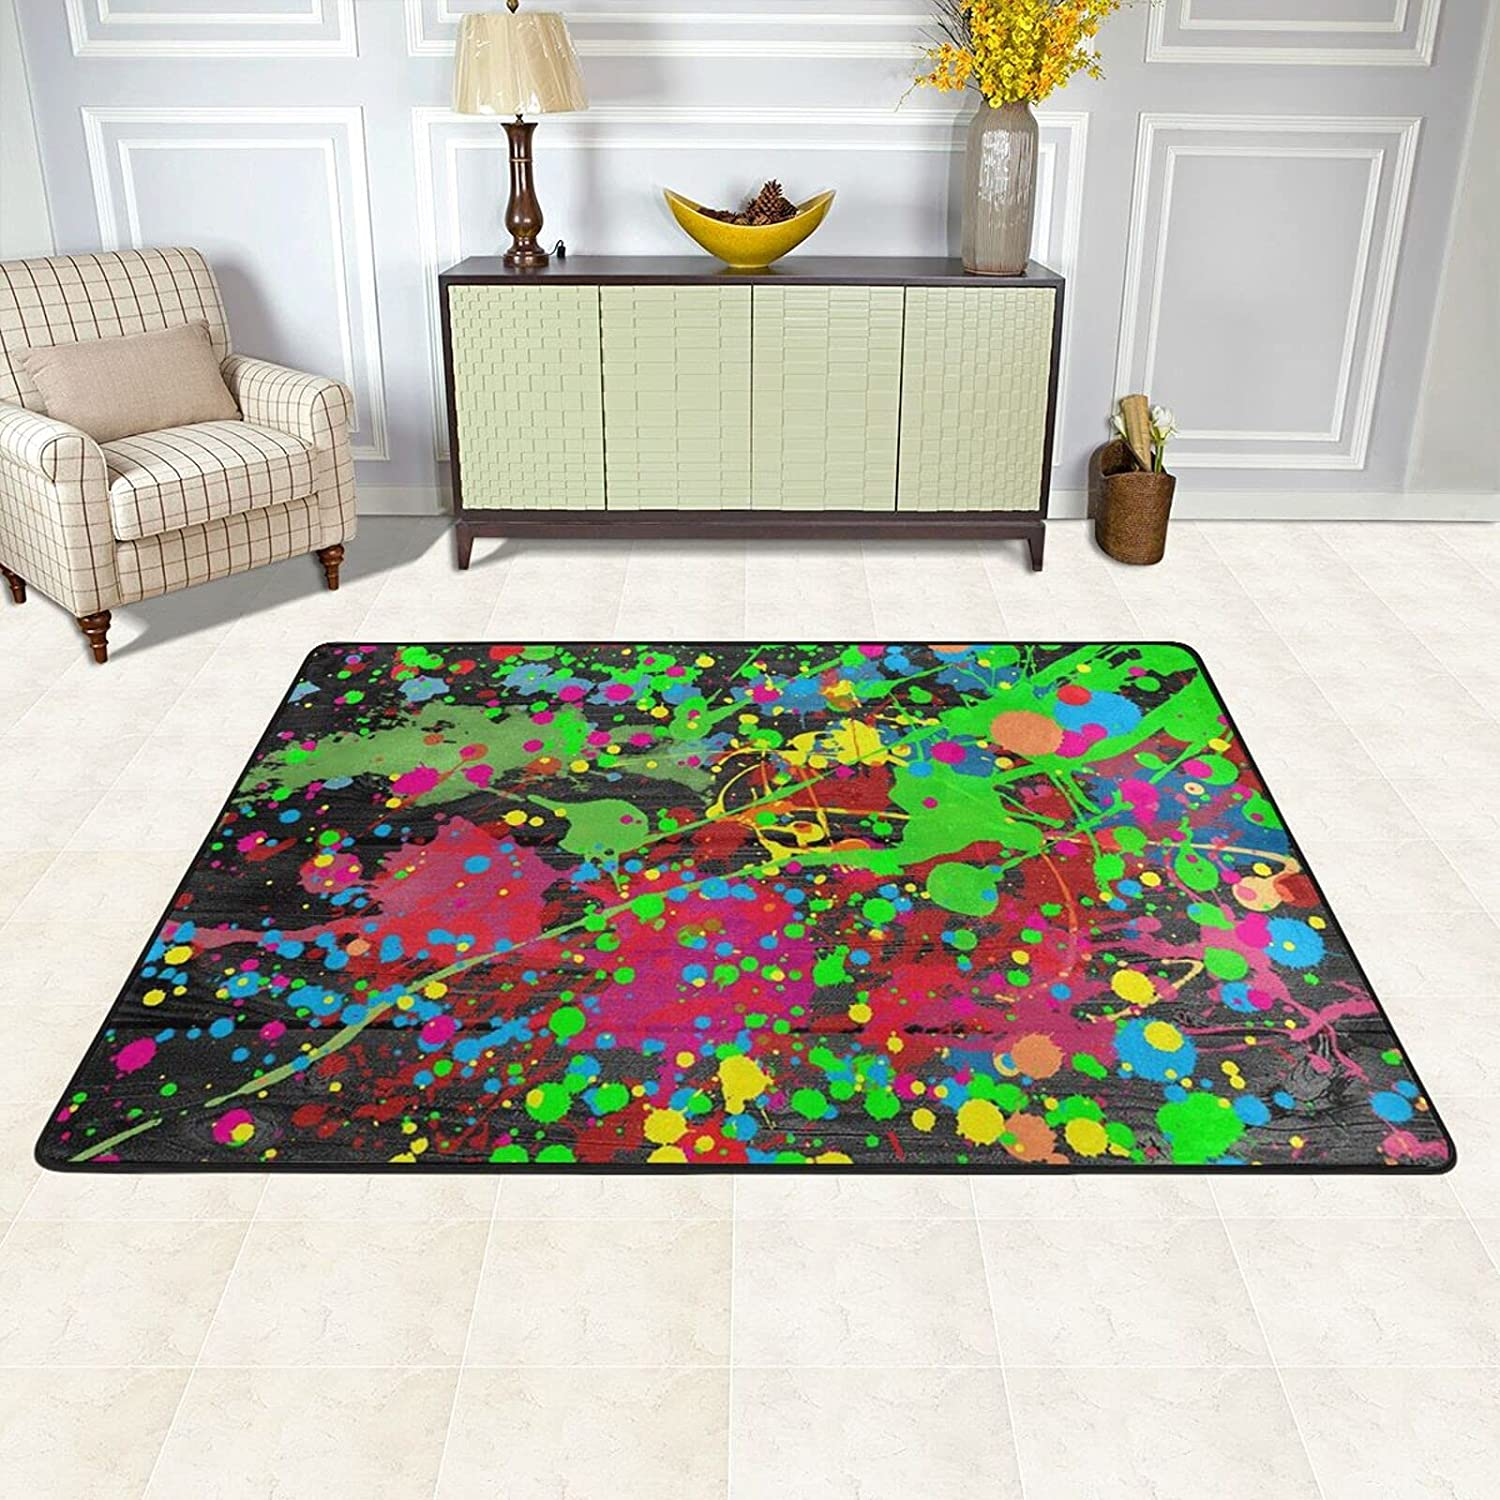 Area Rugs Pad Luxury goods for Bedroom Living Room Brand Cheap Sale Venue Distinctive Pai Out Stand